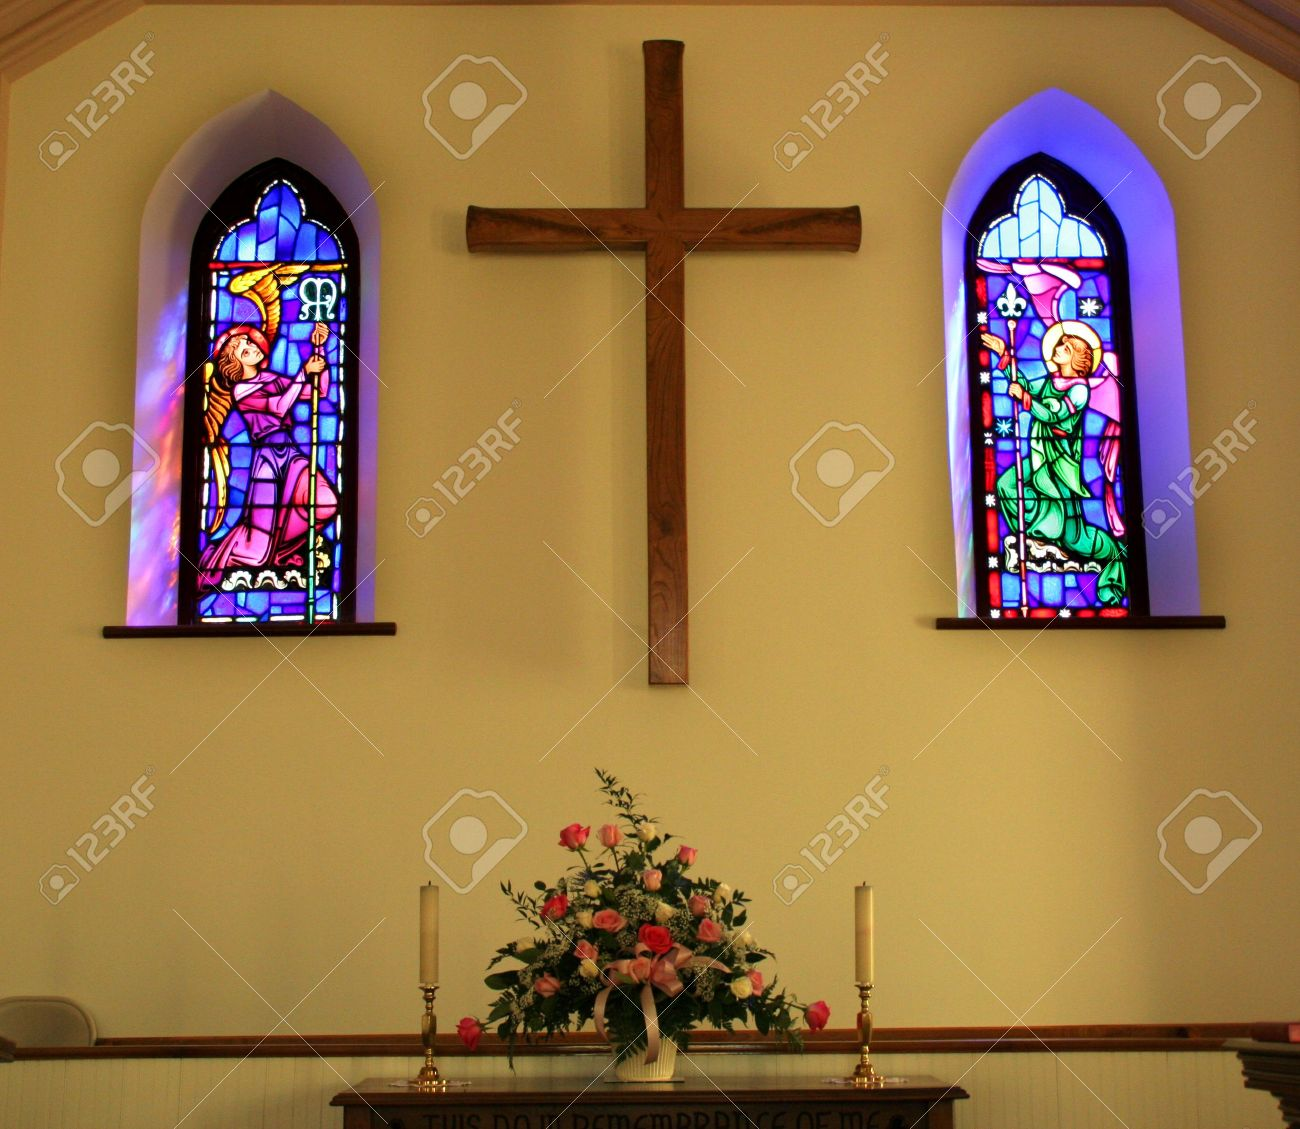 Church Interior With Stained Glass Windows Cross And Altar Stock Photo